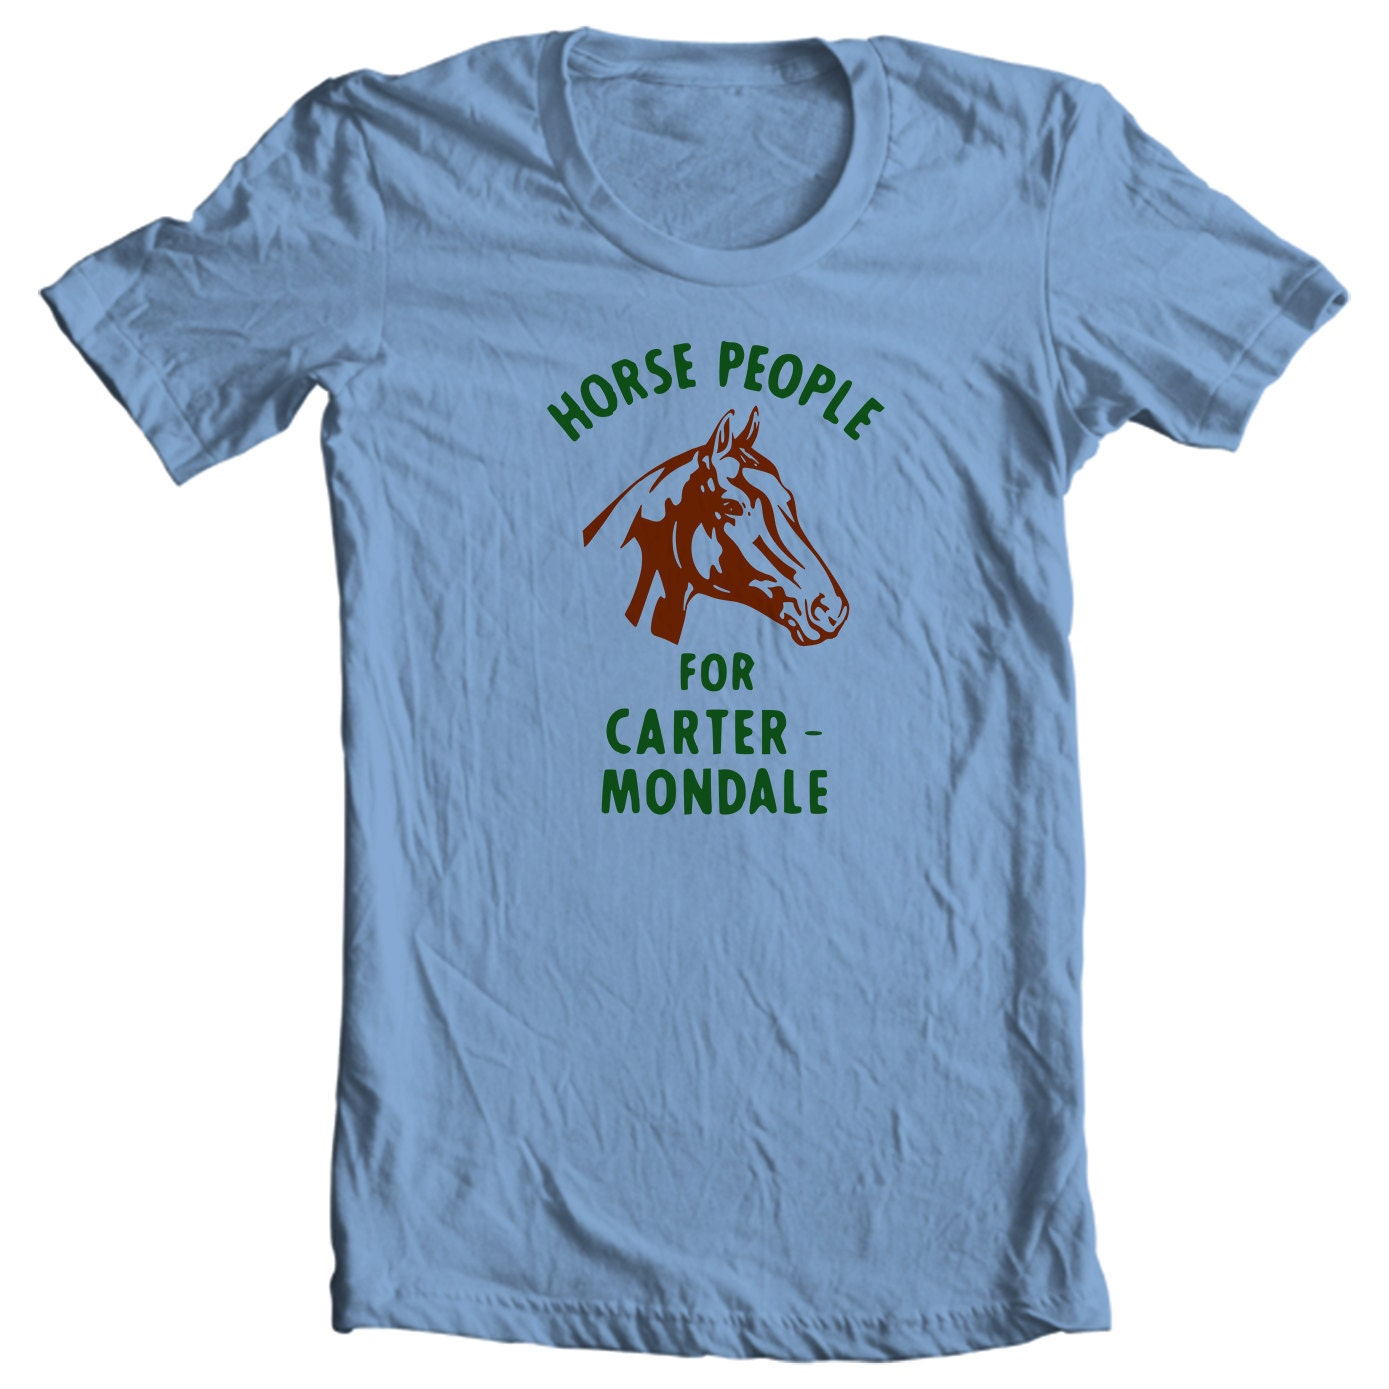 Horse People For Carter & Mondale - Jimmy Carter Presidential Campaign Button Shirt